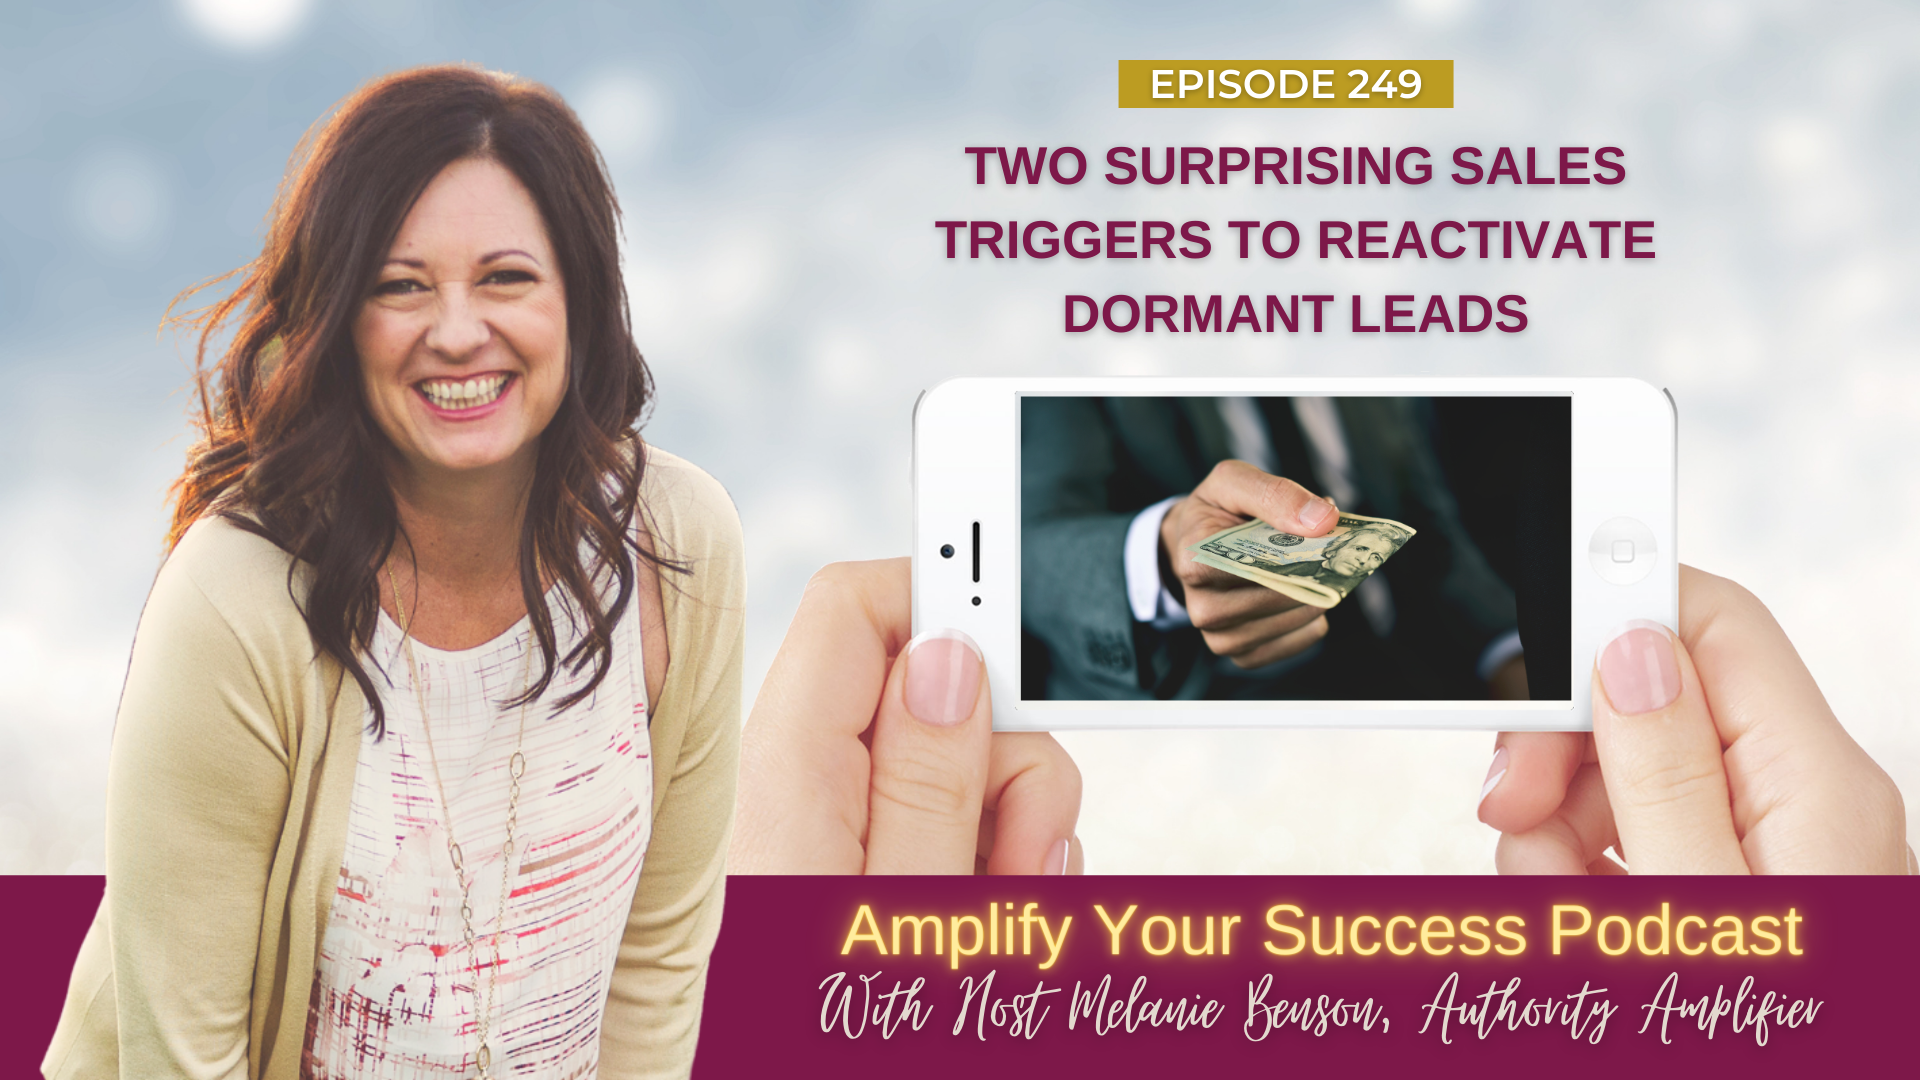 Two Surprising Sales Triggers to Reactivate Dormant Leads